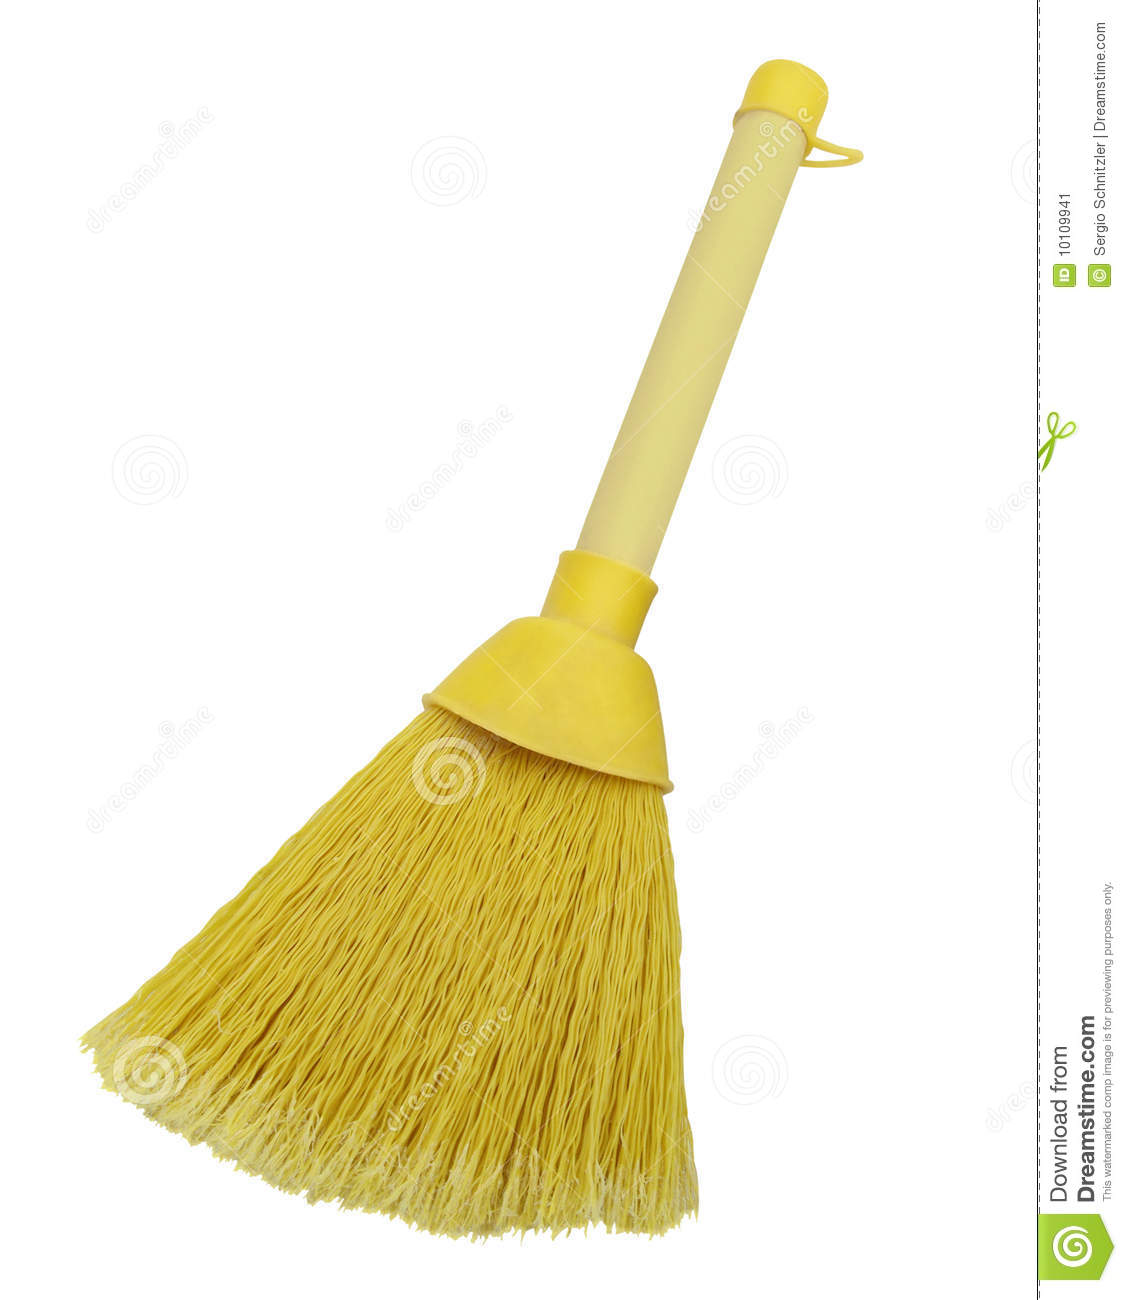 Yellow plastic broom isolated on white background.